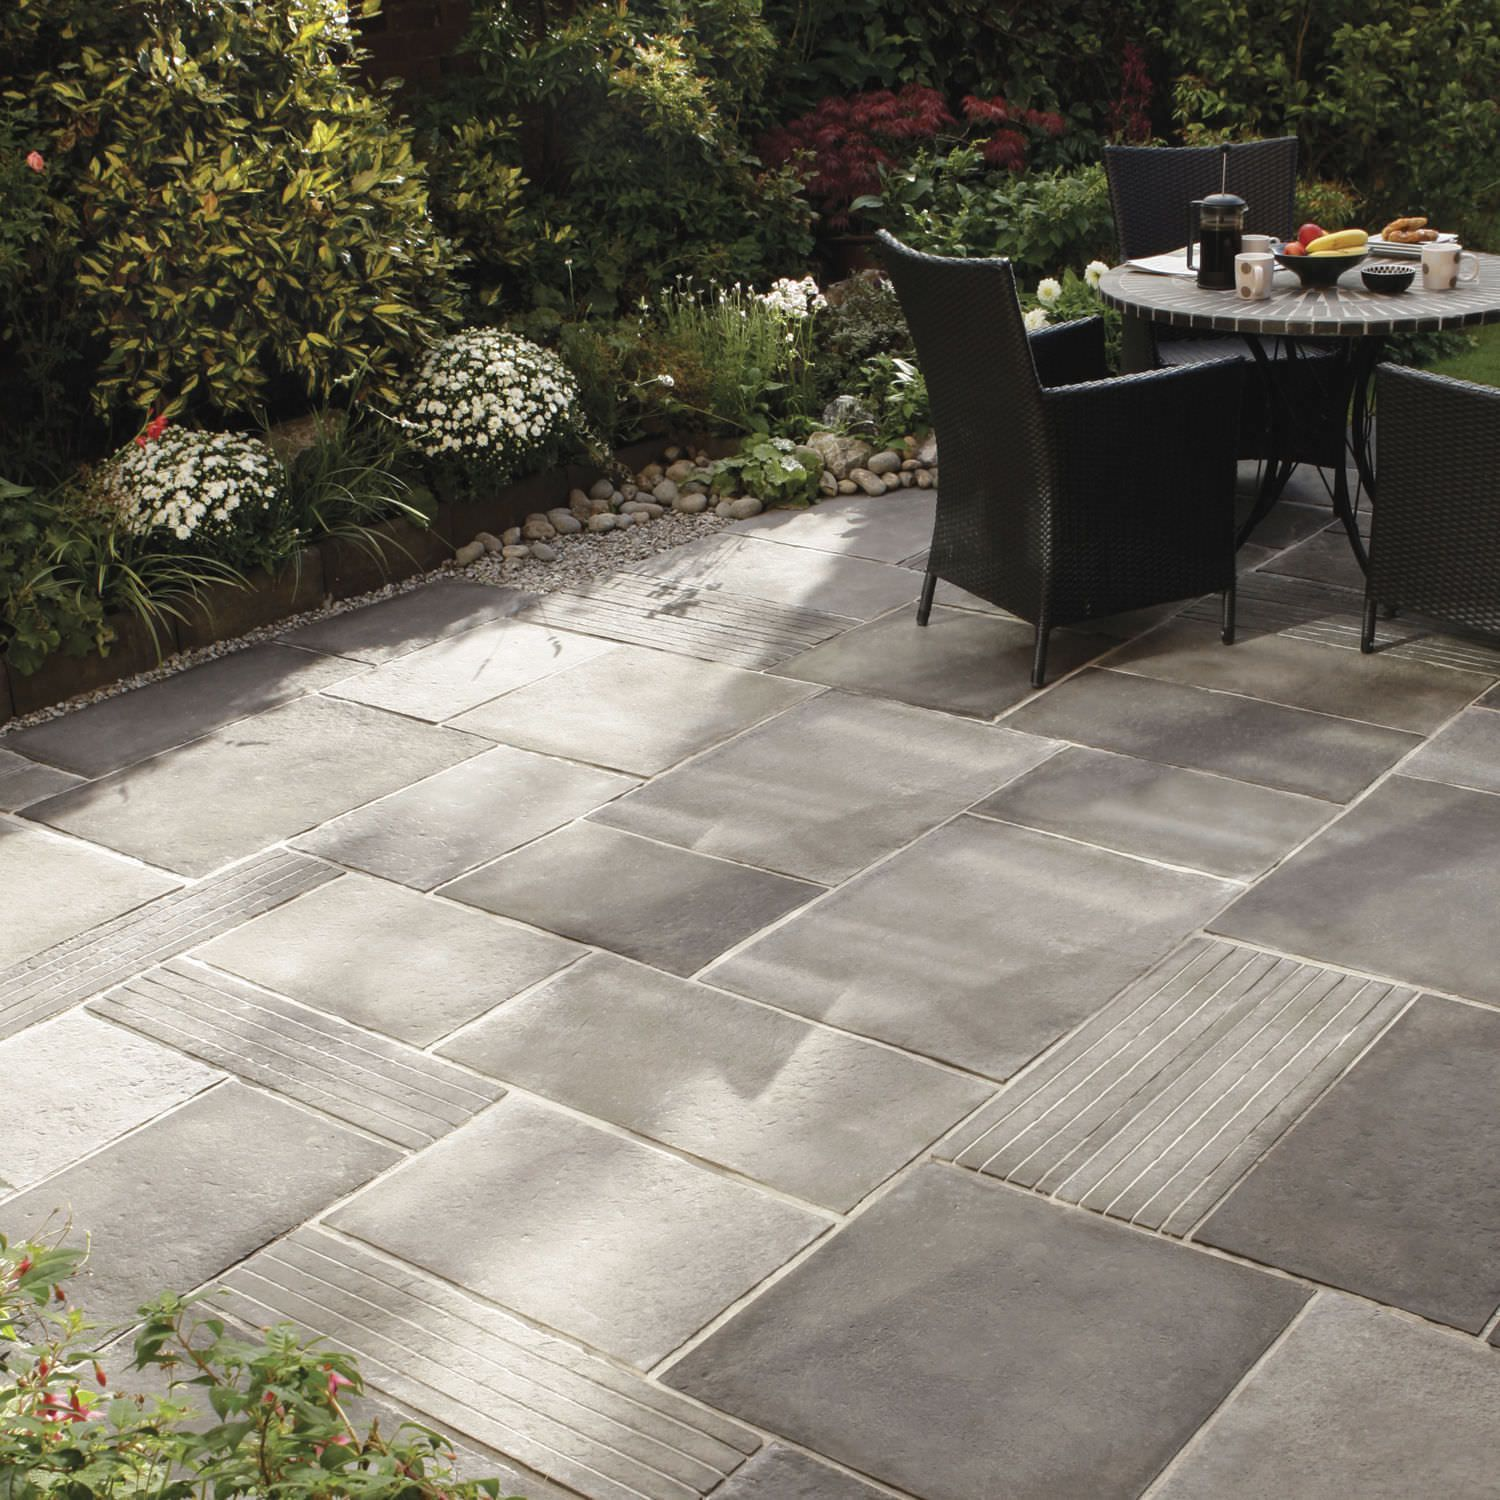 Concrete Outdoor Kitchen Countertops: Outdoor Backyard With Concrete Paver And Black Furniture